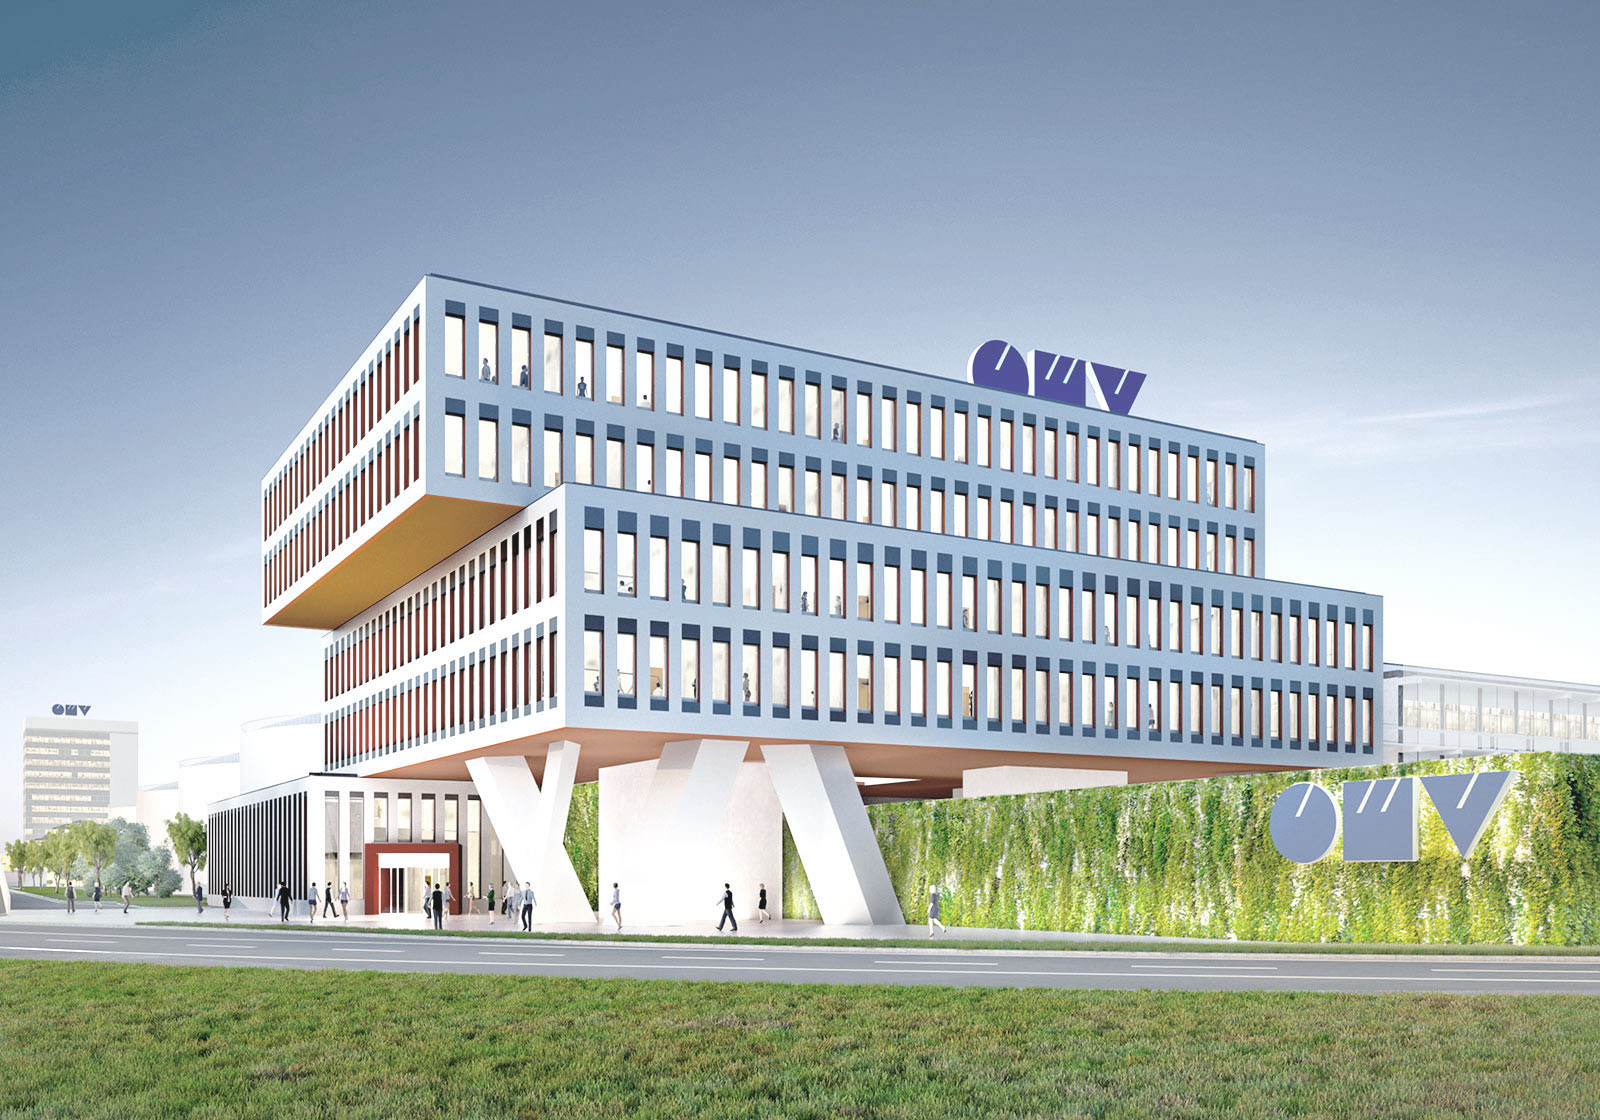 The new OMV office building in Schwechat. Visualization: Telegram 71, Giacomo Dodich